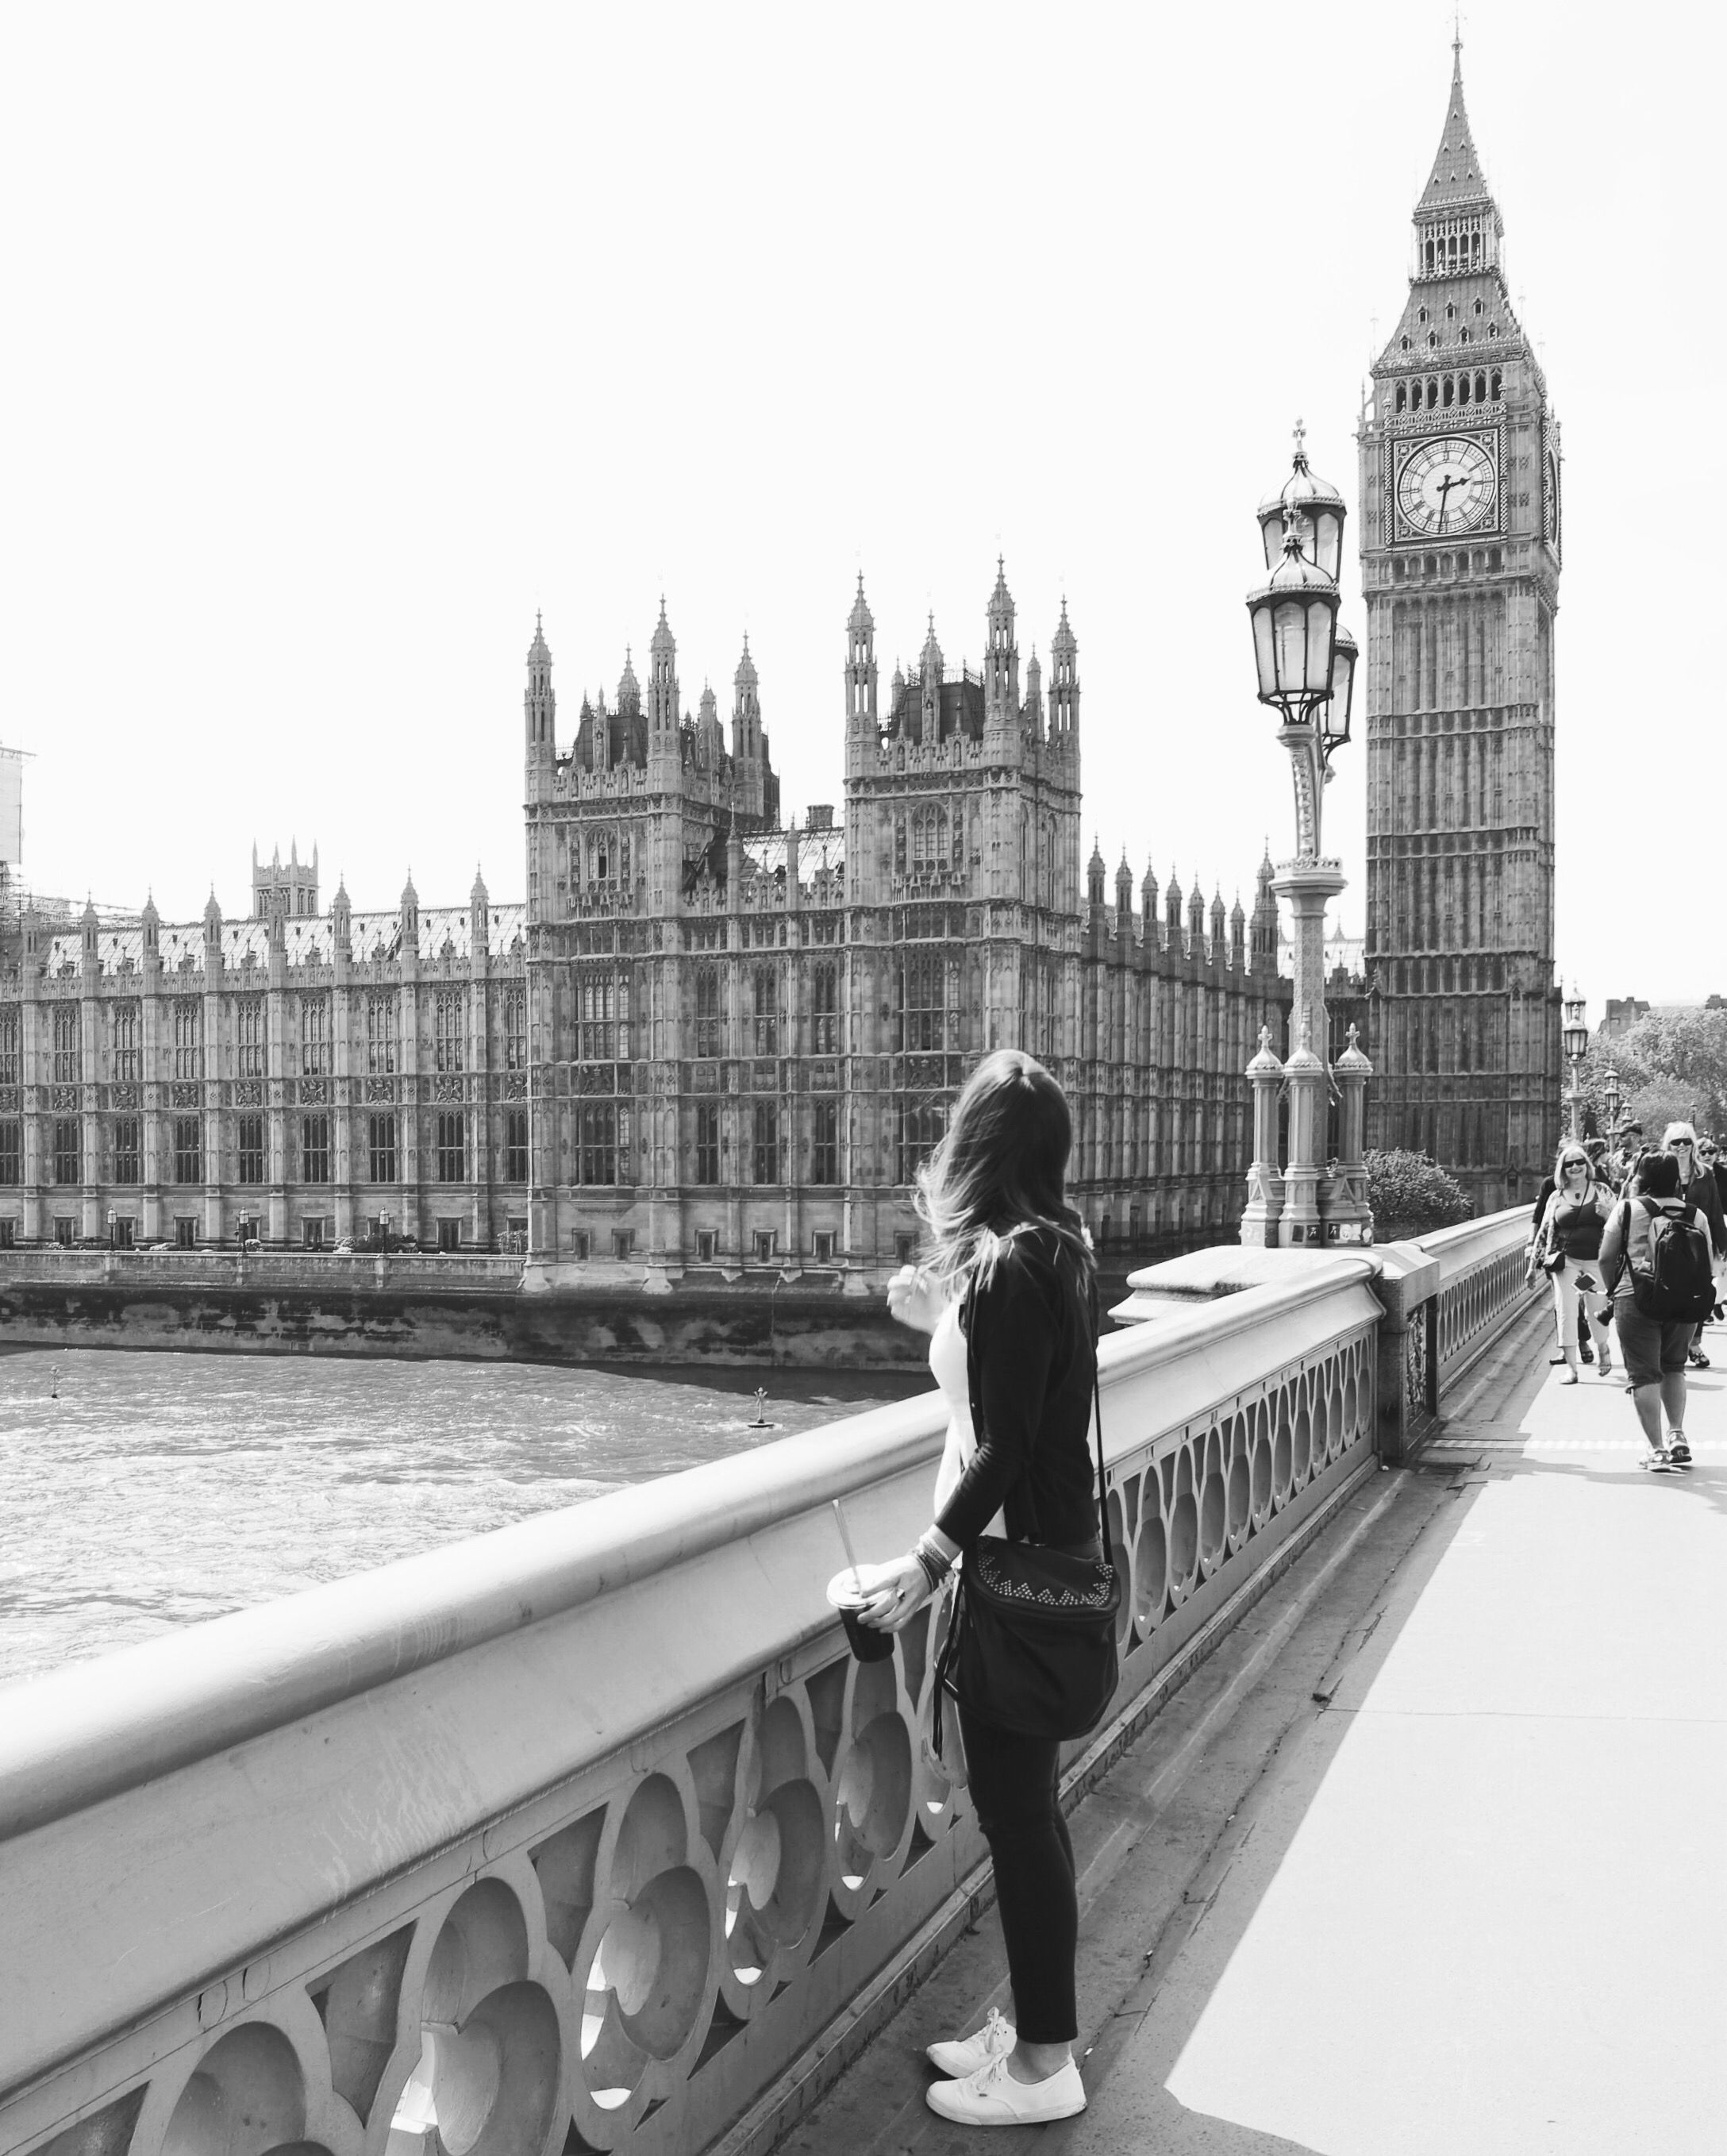 Planning a trip to London? Here are 8 things you absolutely cannot miss!